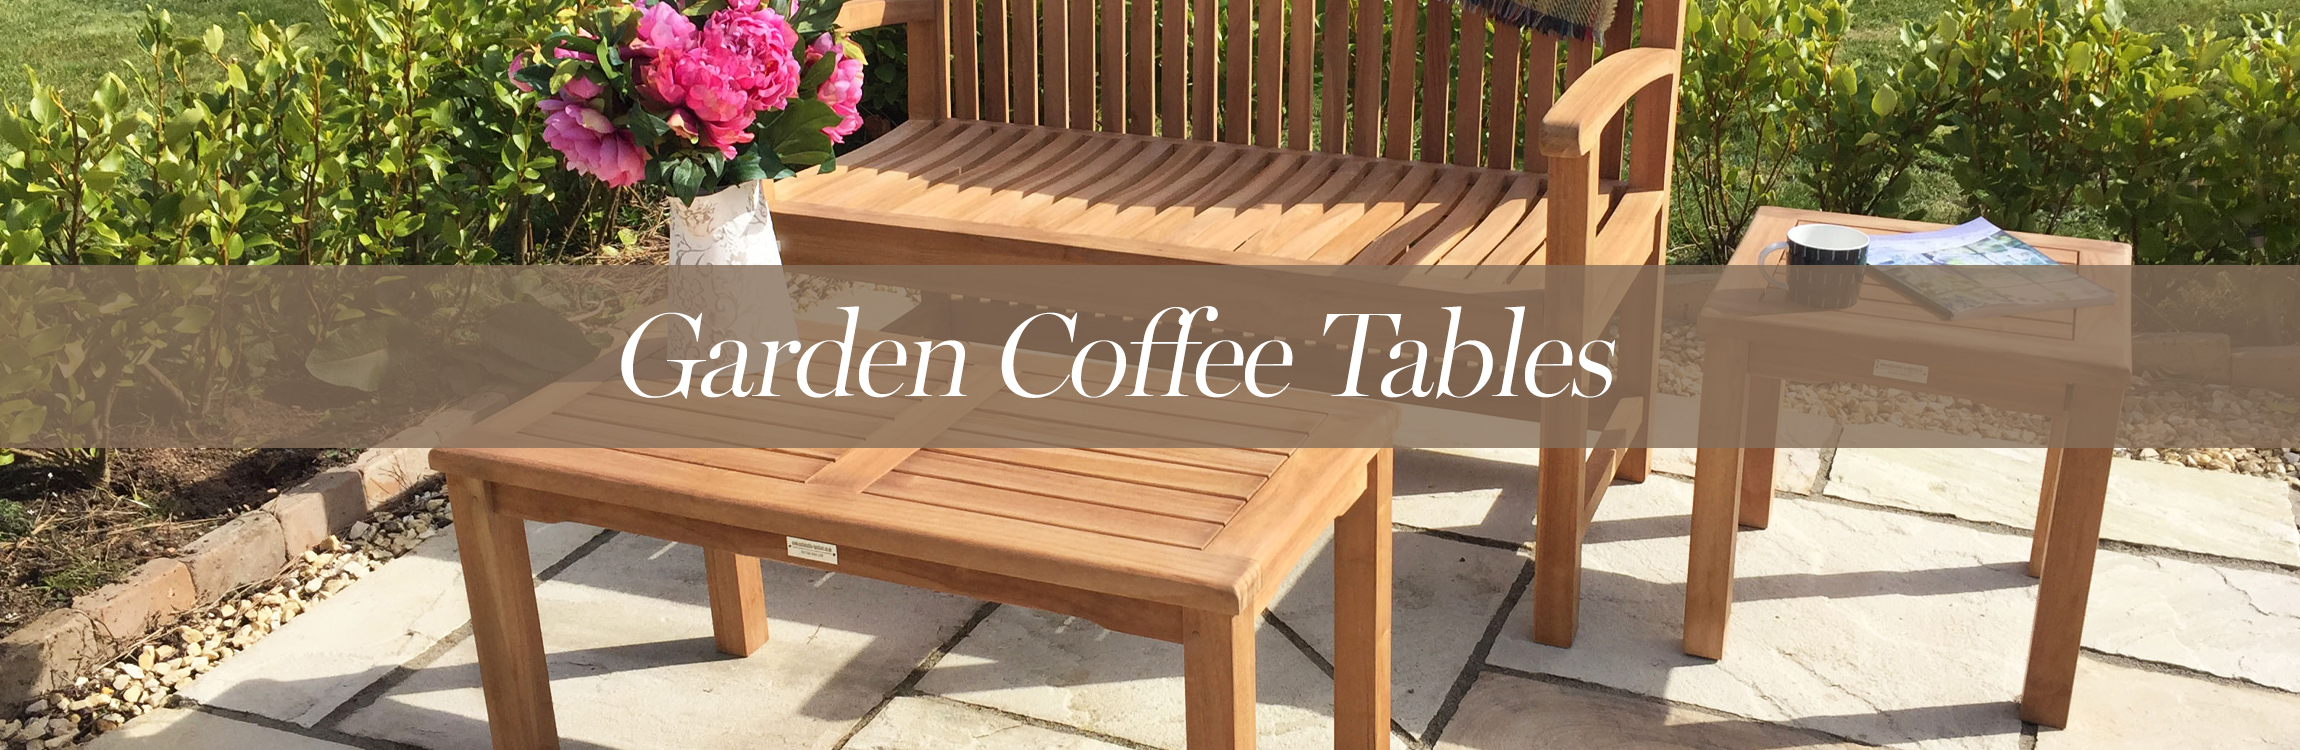 Garden Coffee Tables